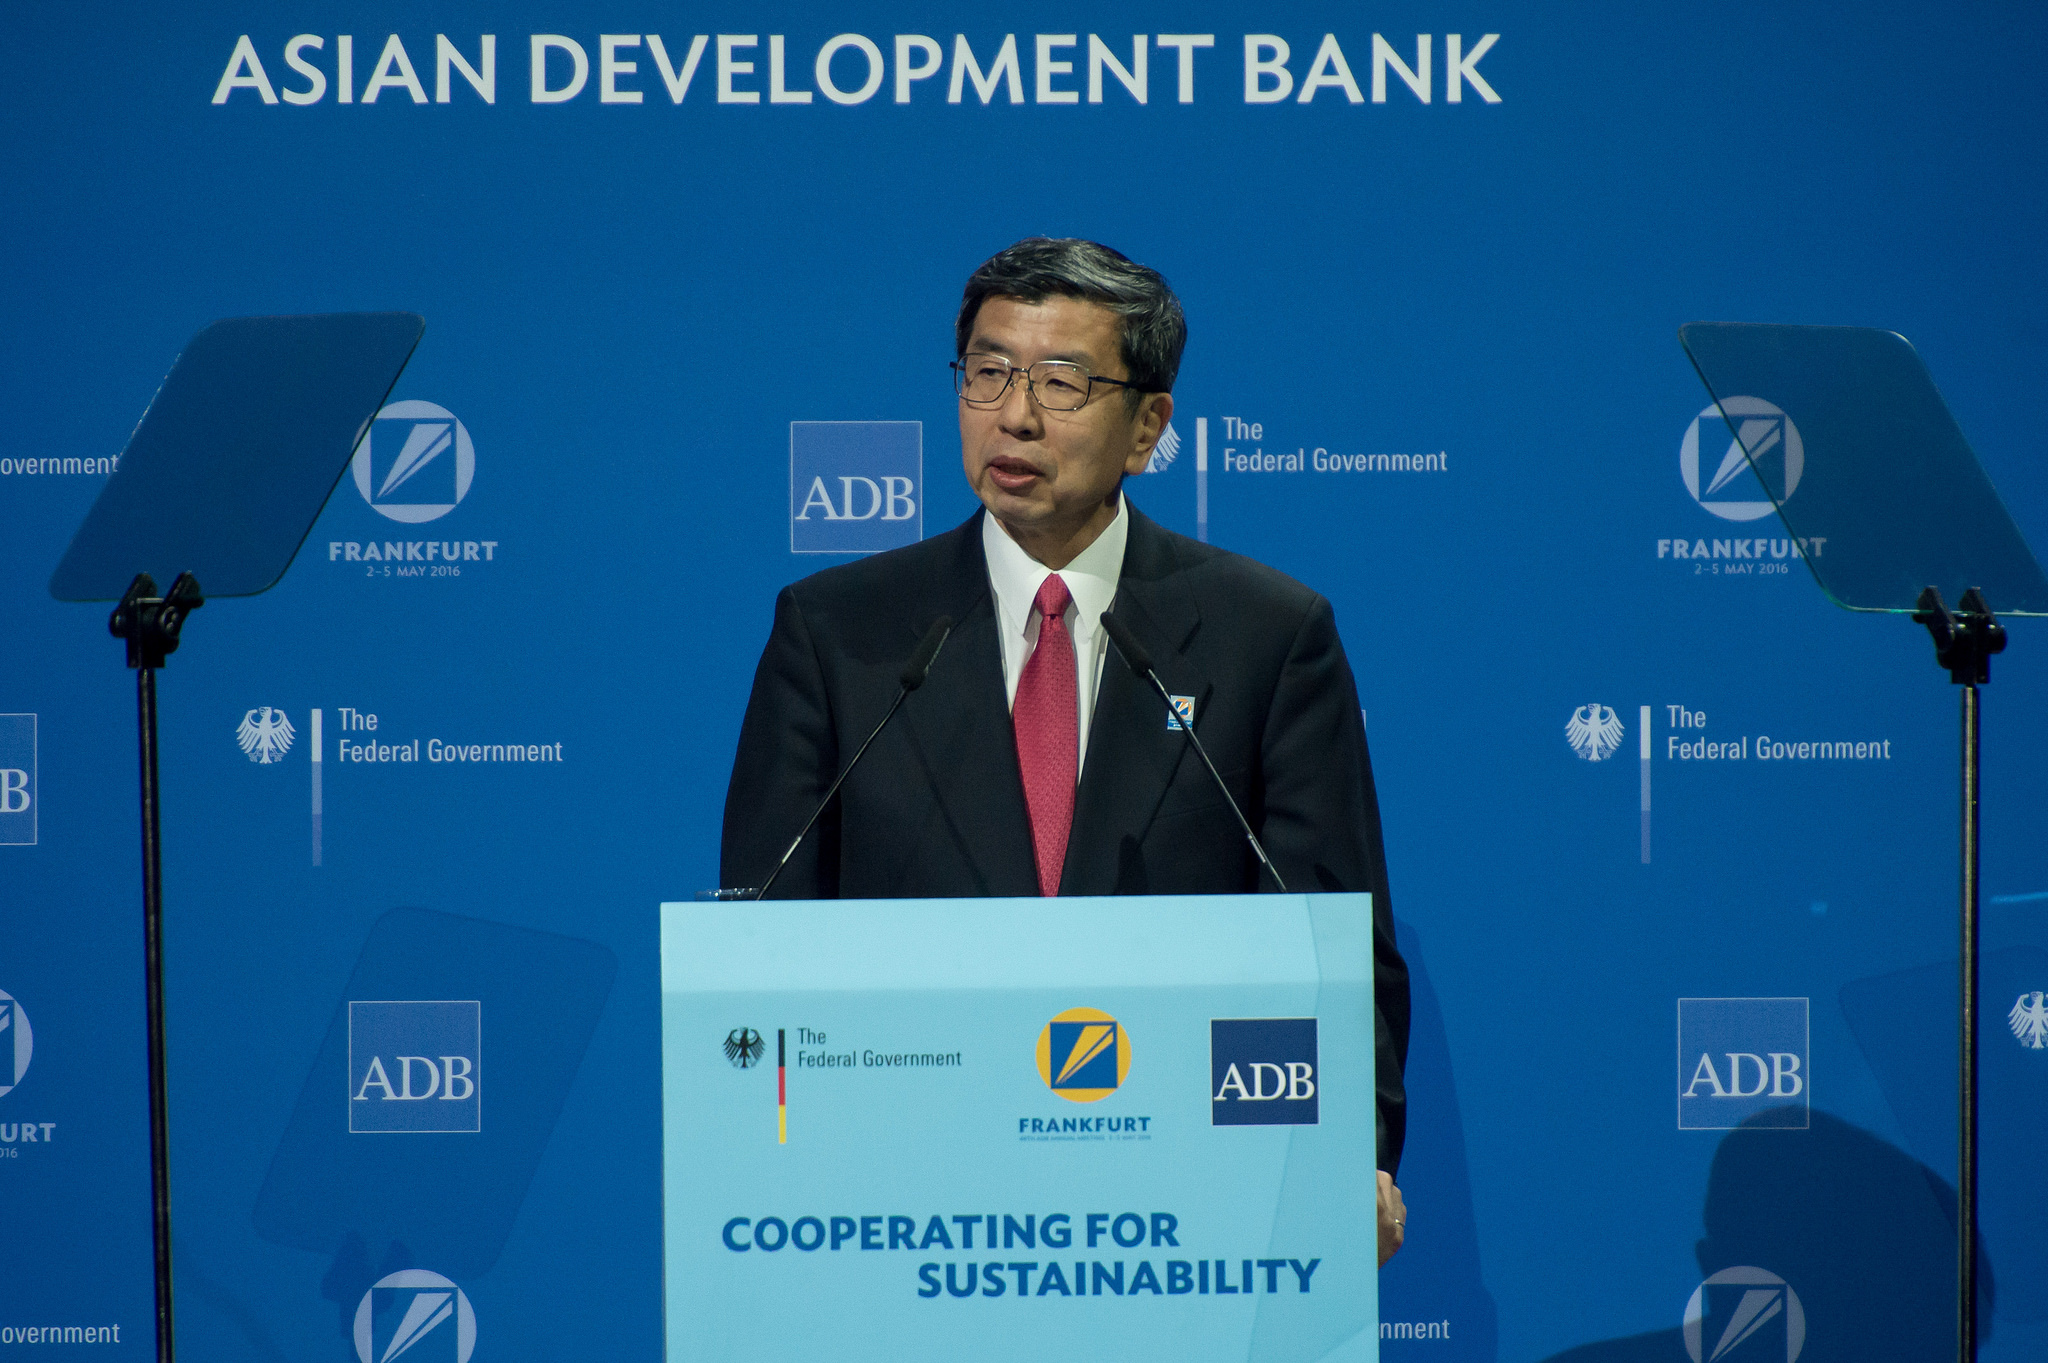 Of the asian development bank